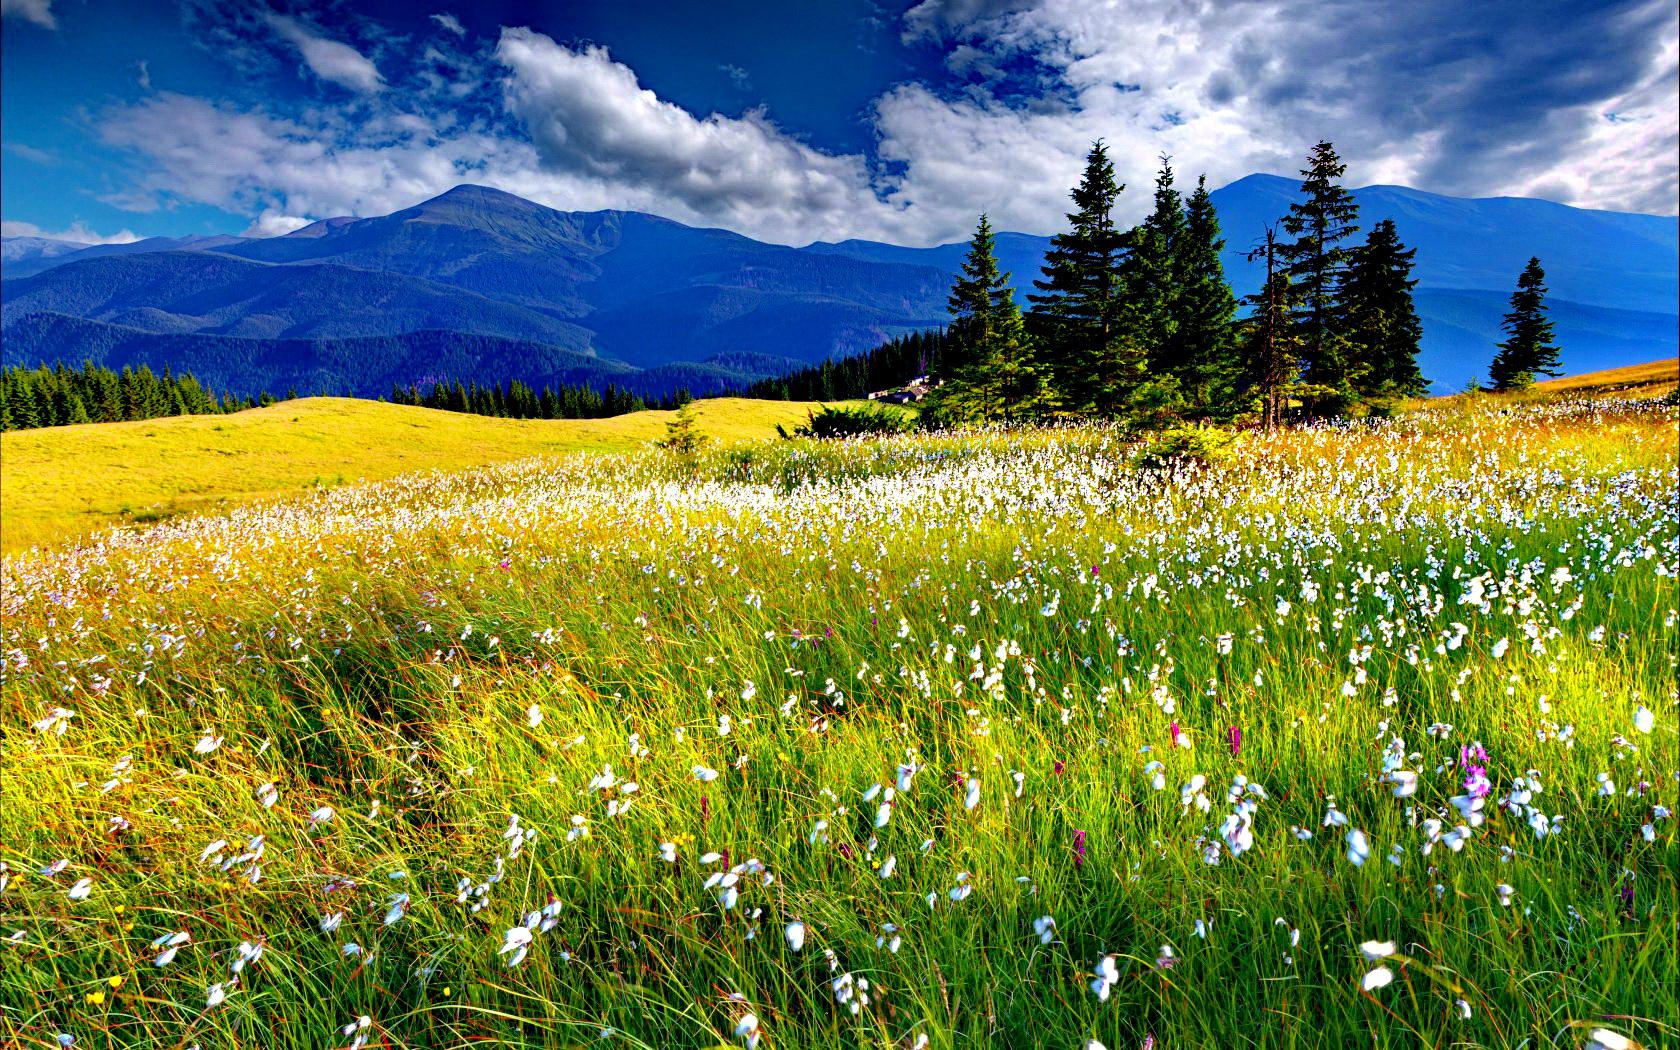 Spring meadow wallpaper 1680x1050 68911 for The meado